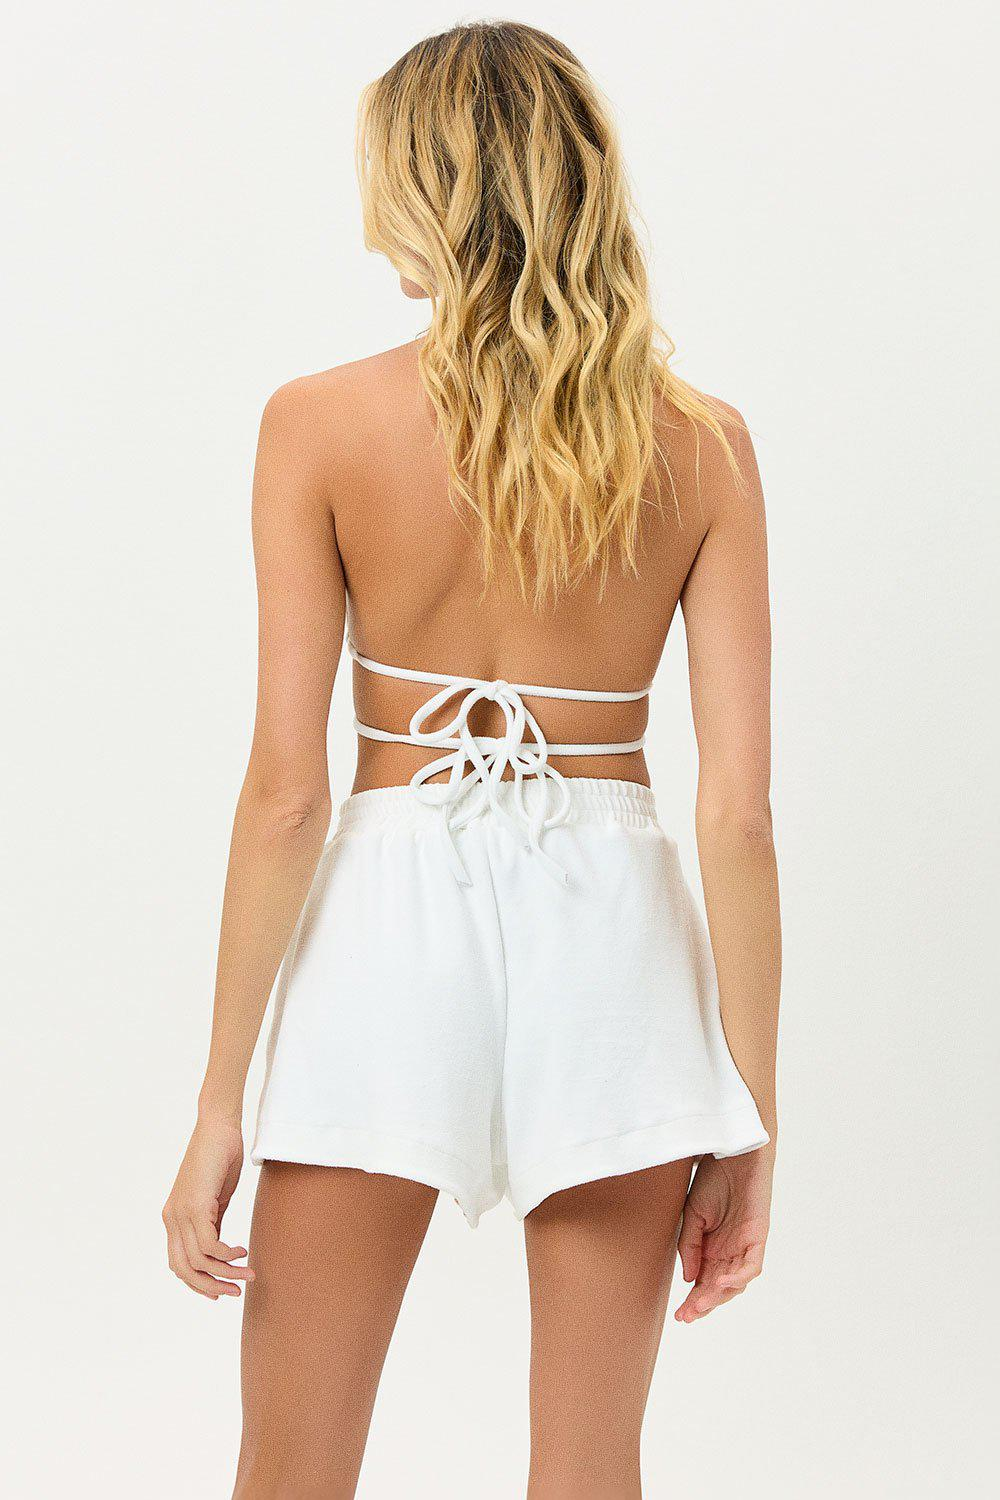 Coco Terry Shorts - White